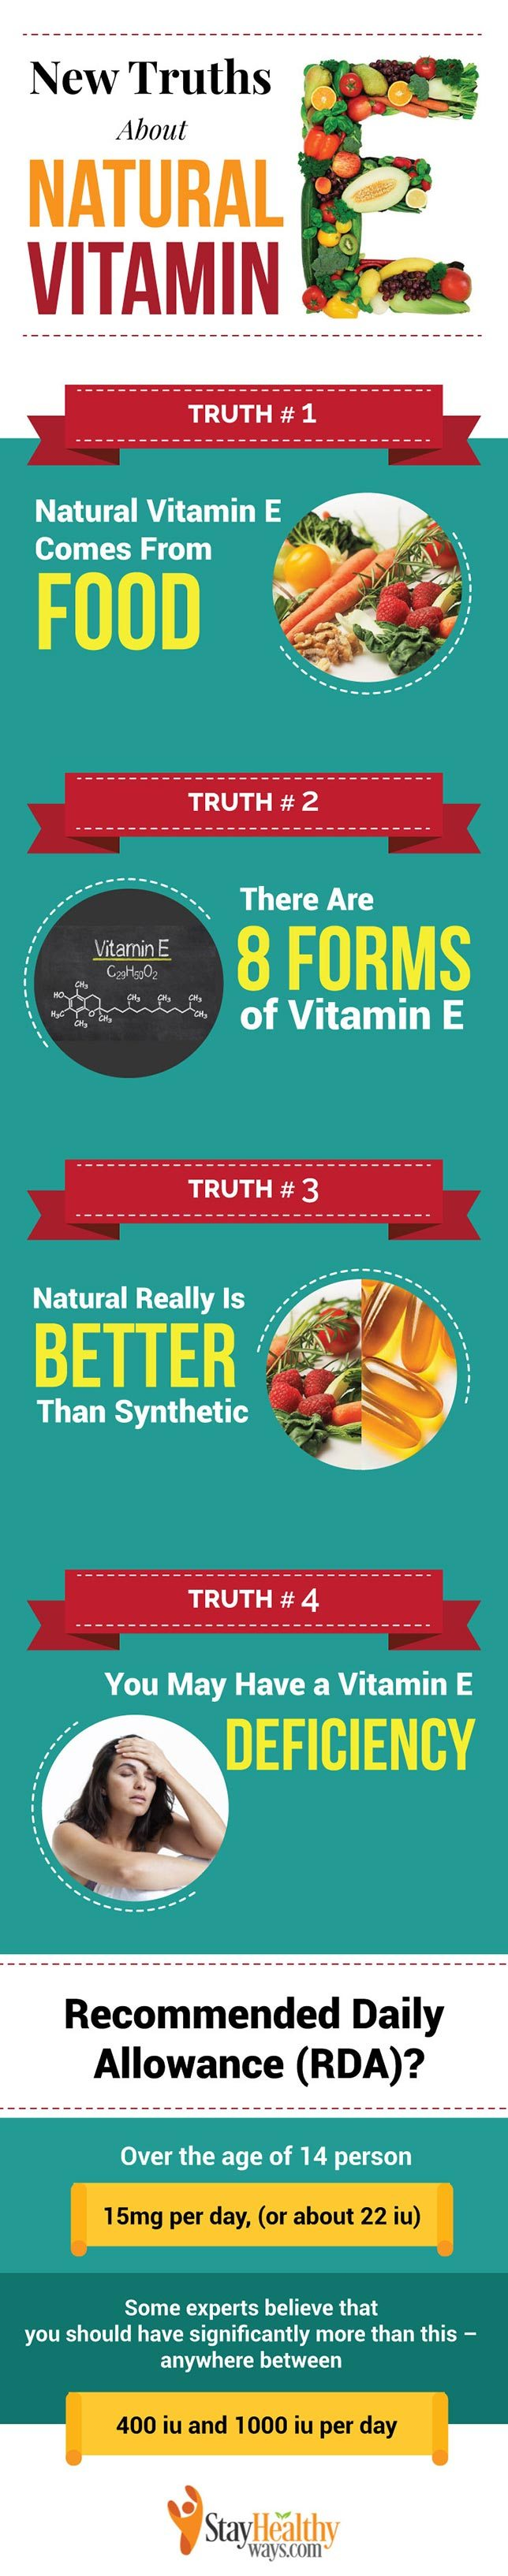 natural vitamin e infographic